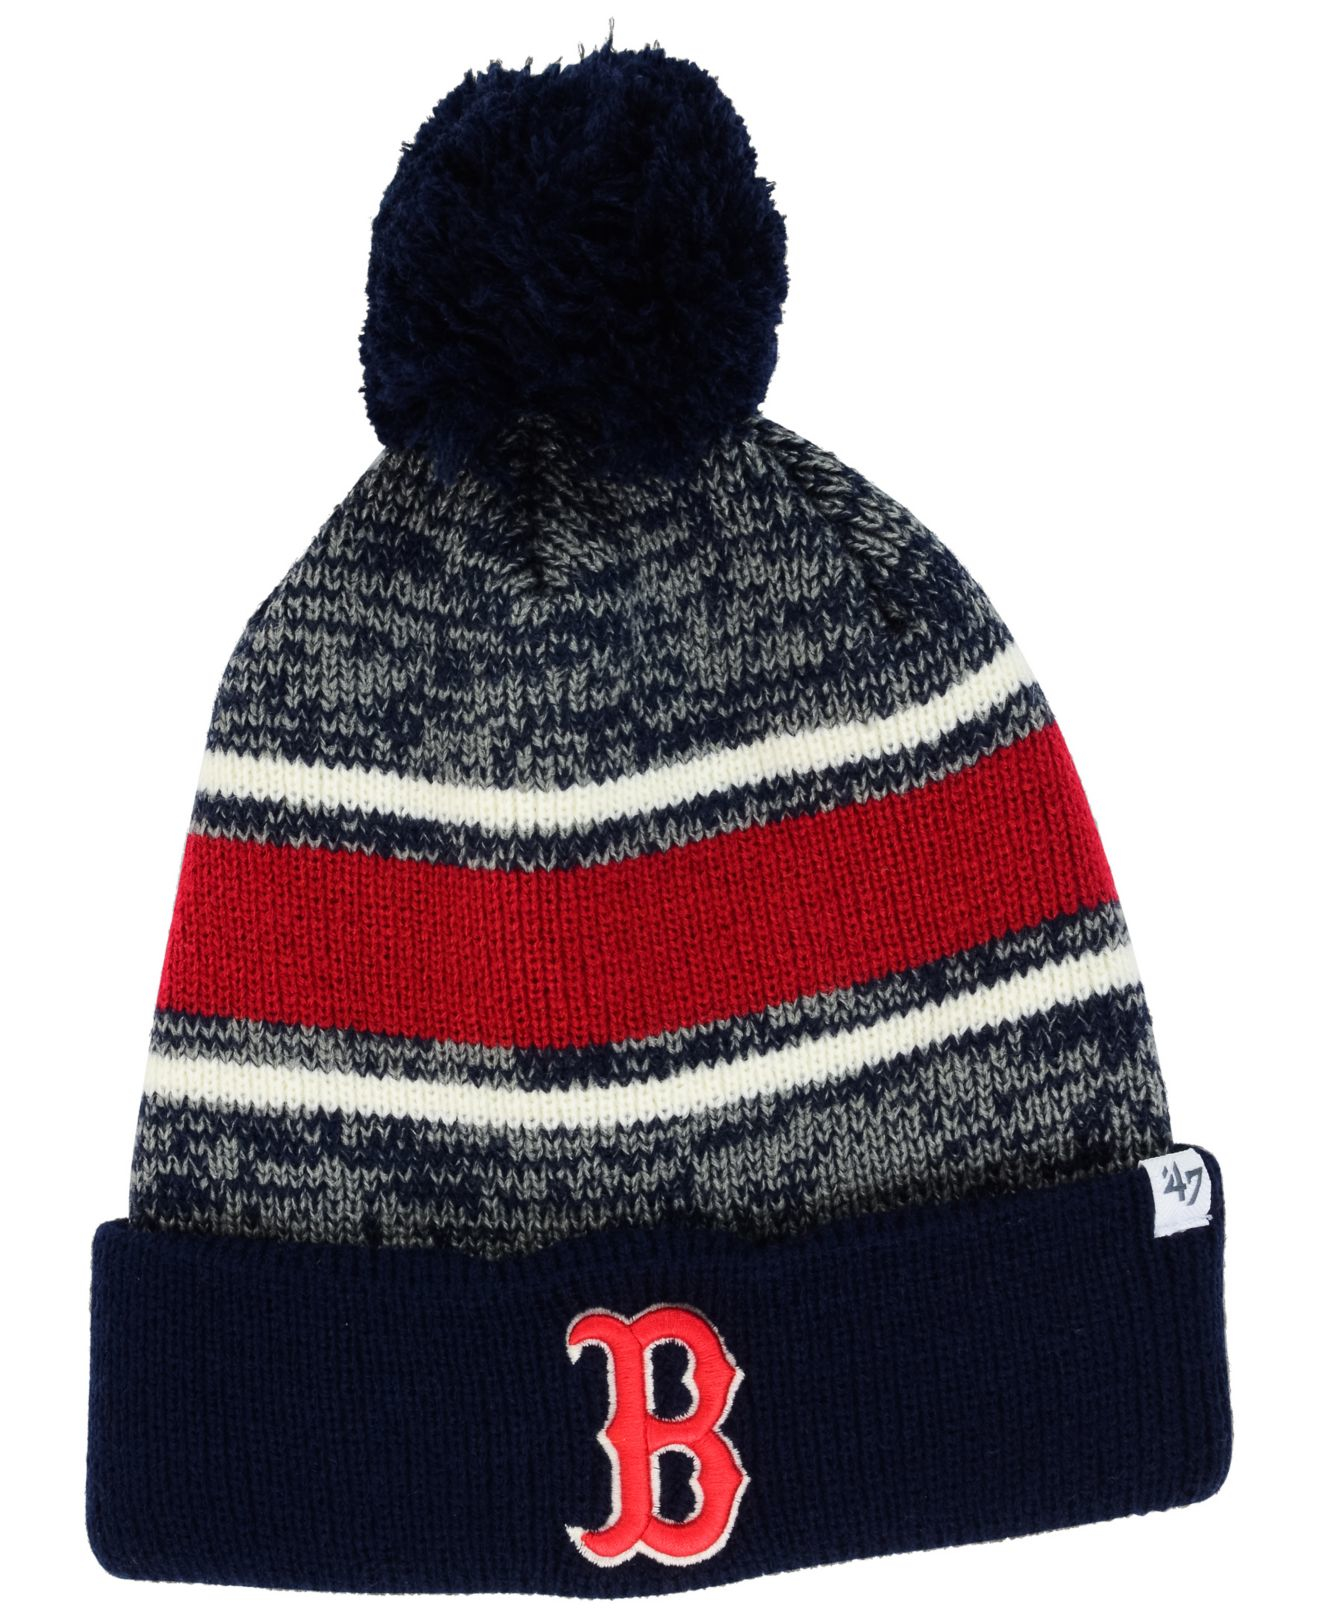 Lyst - 47 Brand Boston Red Sox Fairfax Knit Hat in Blue for Men a84eb9ceb757